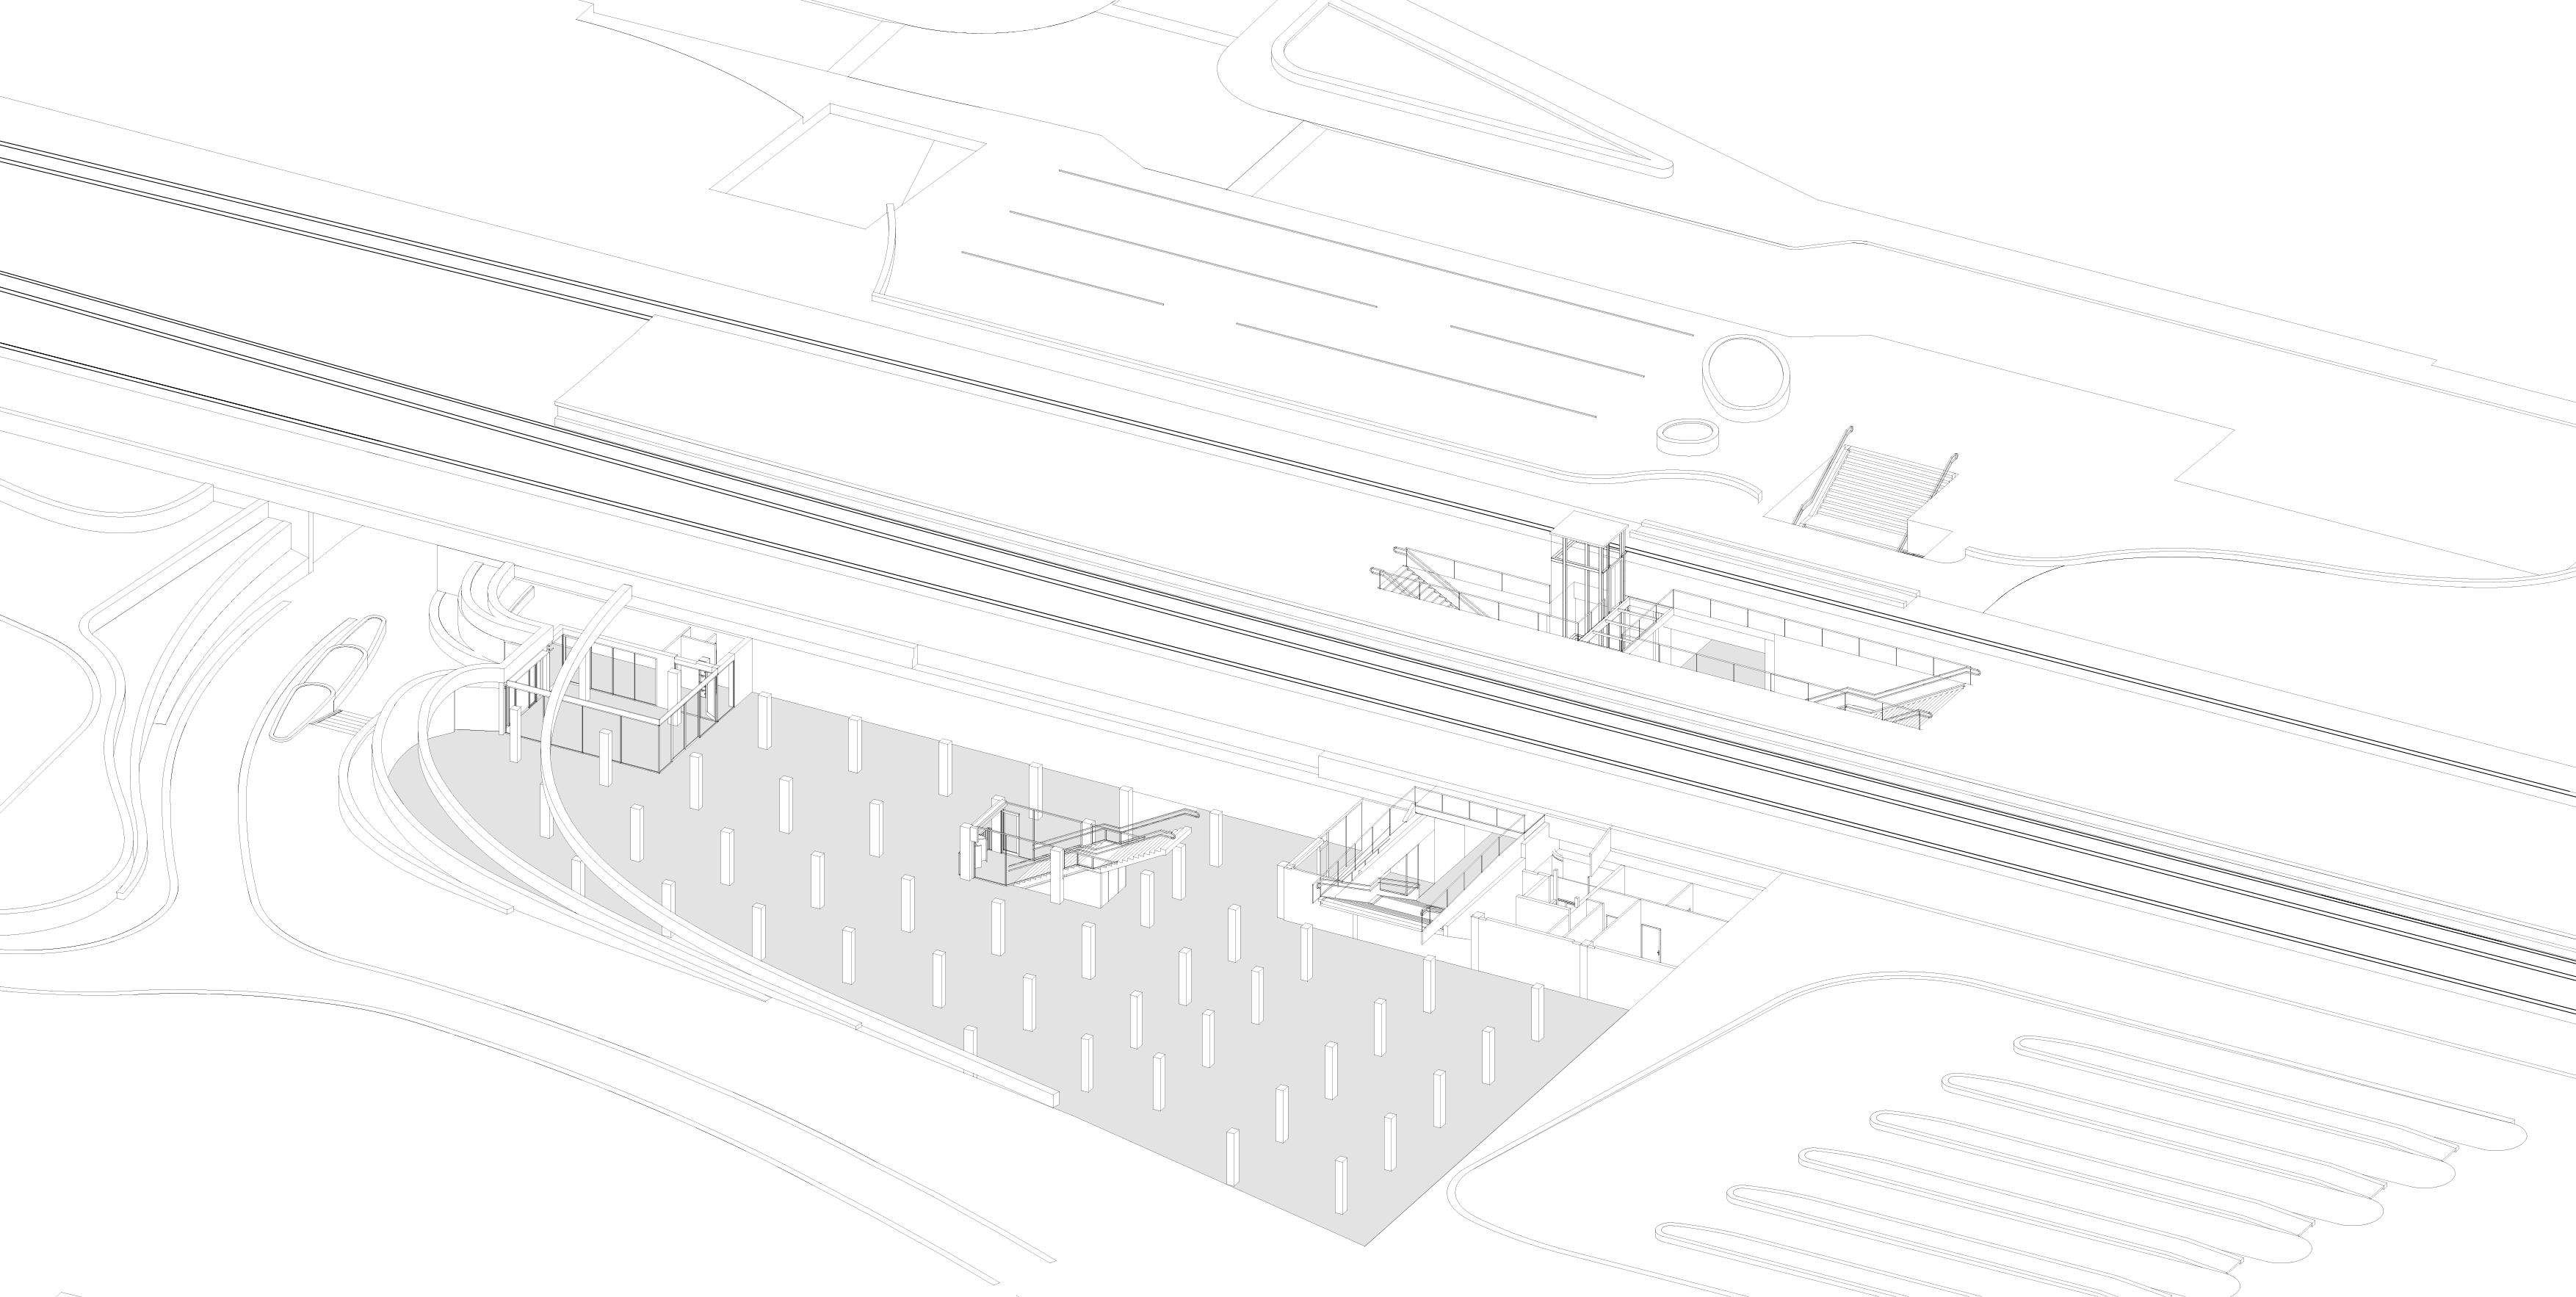 Assen Station - Exploded View